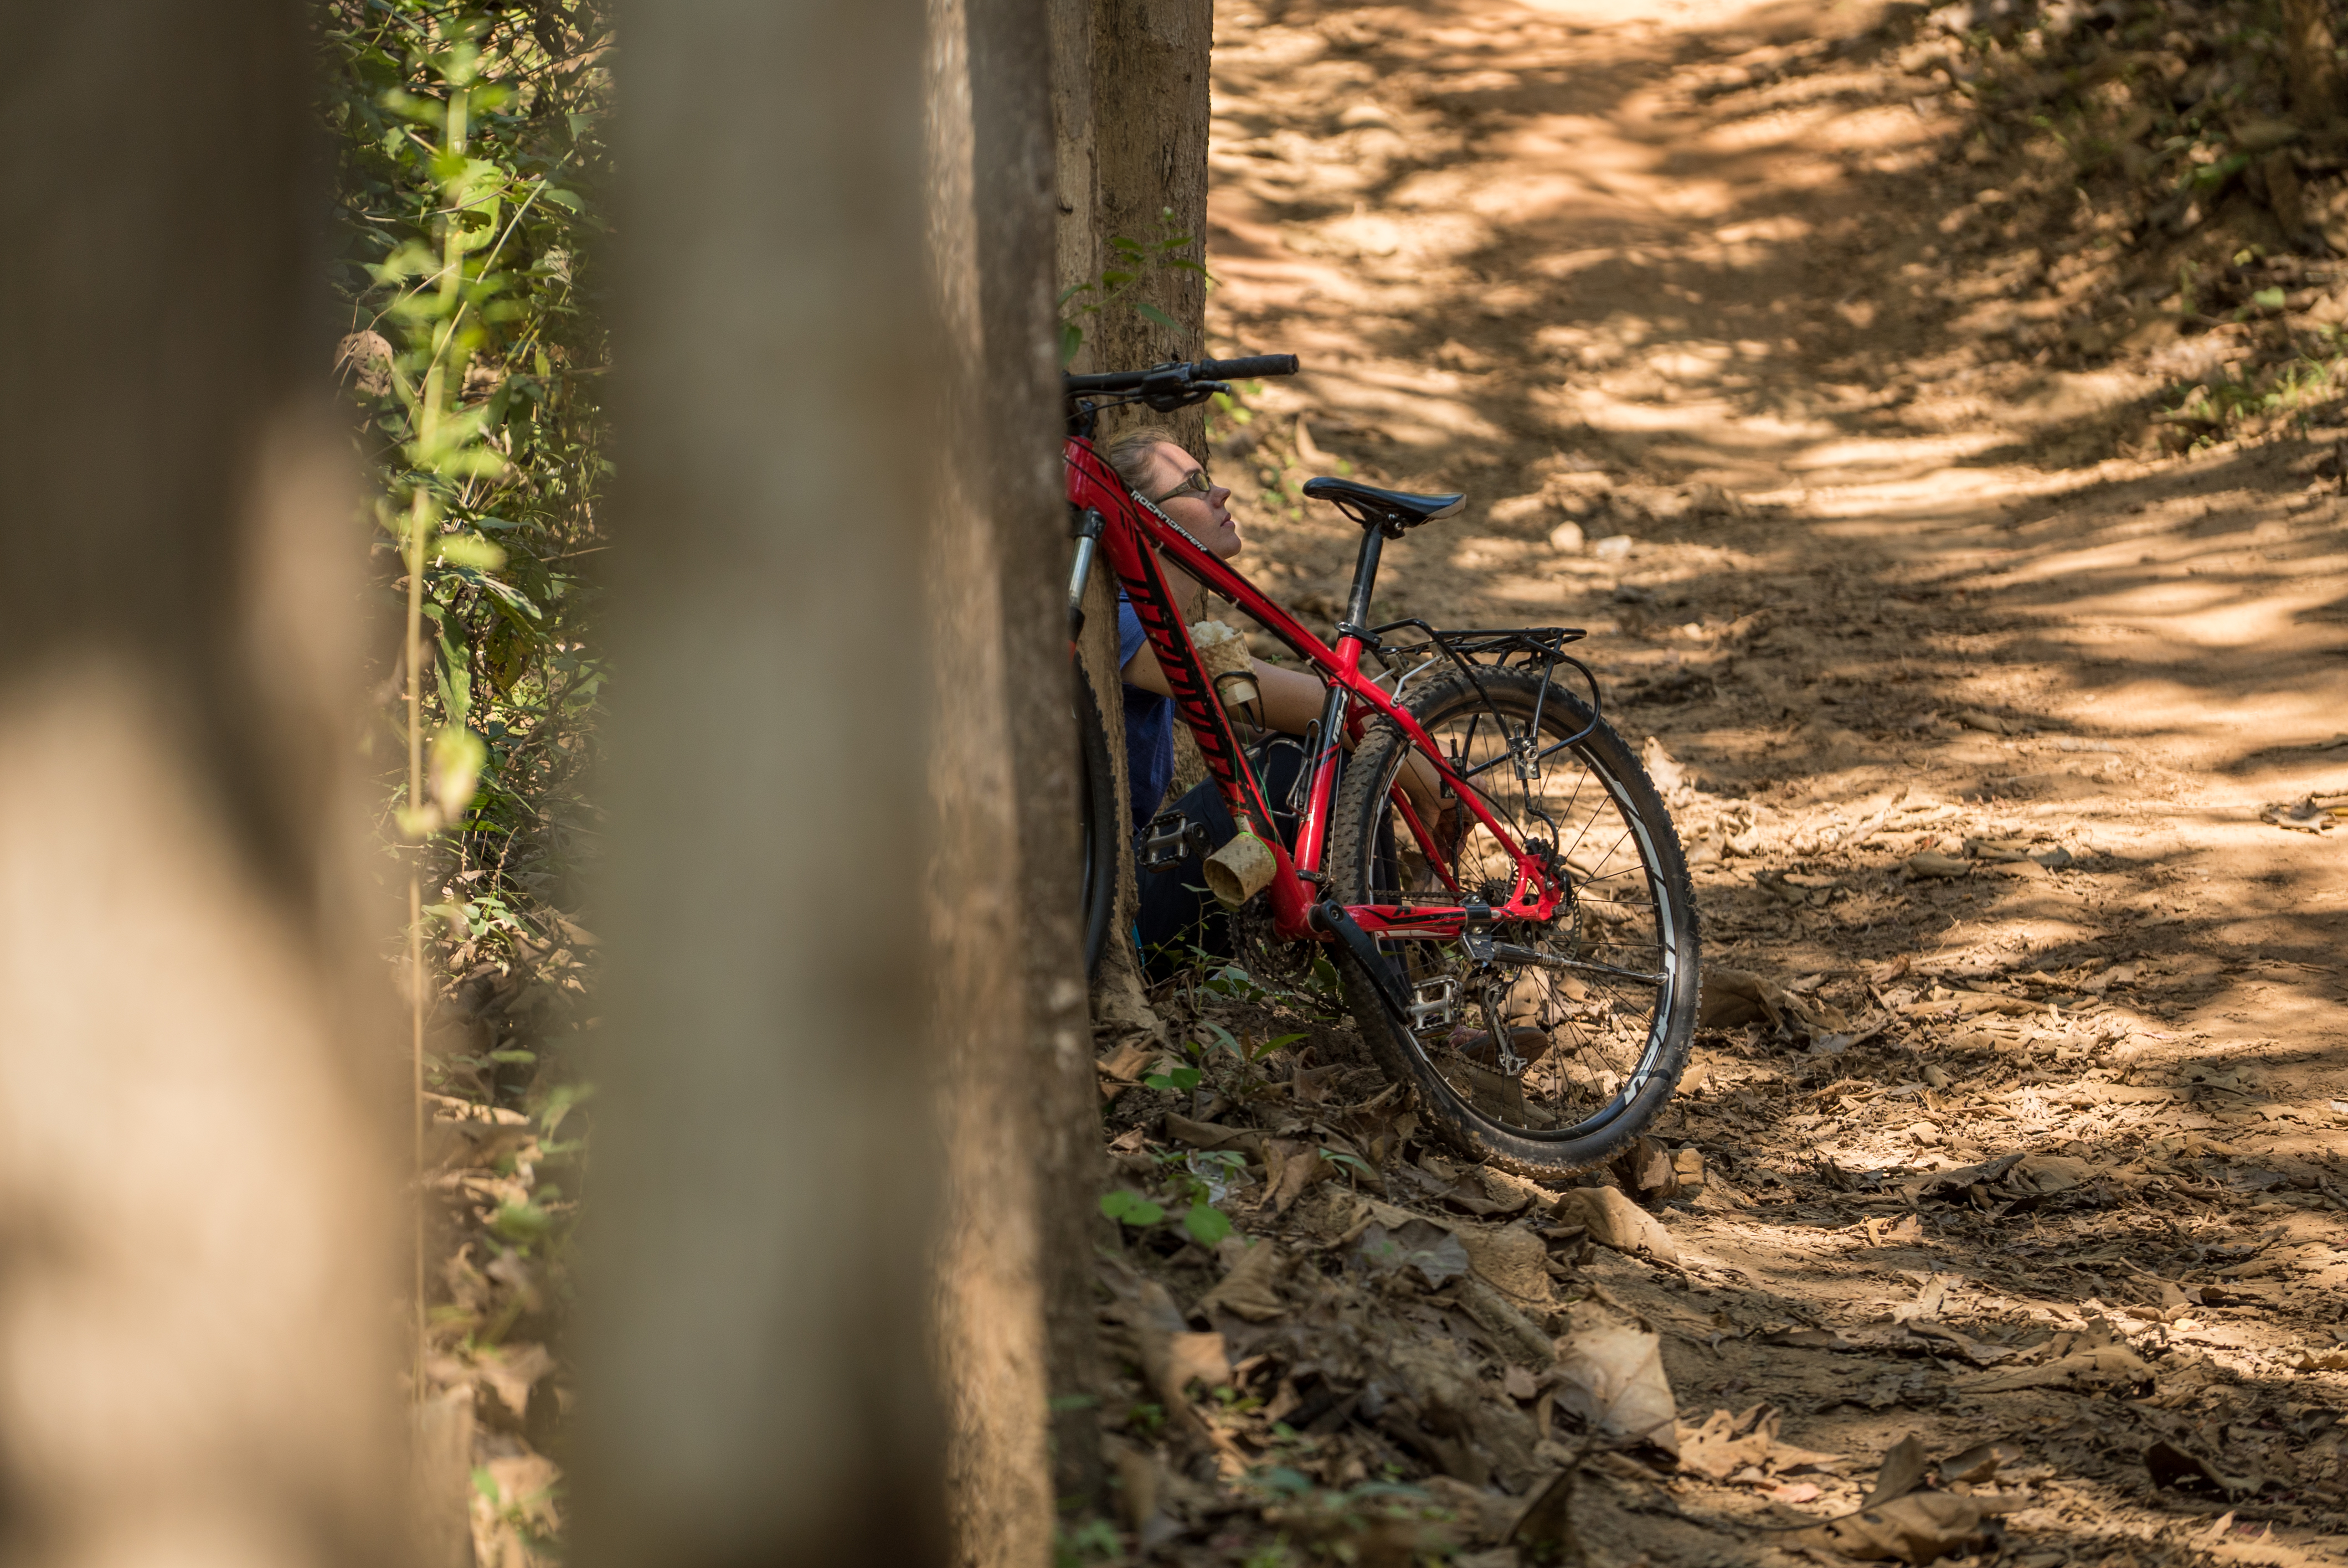 laos-cycling-biking-lao-pdr-single-track-racing-riding